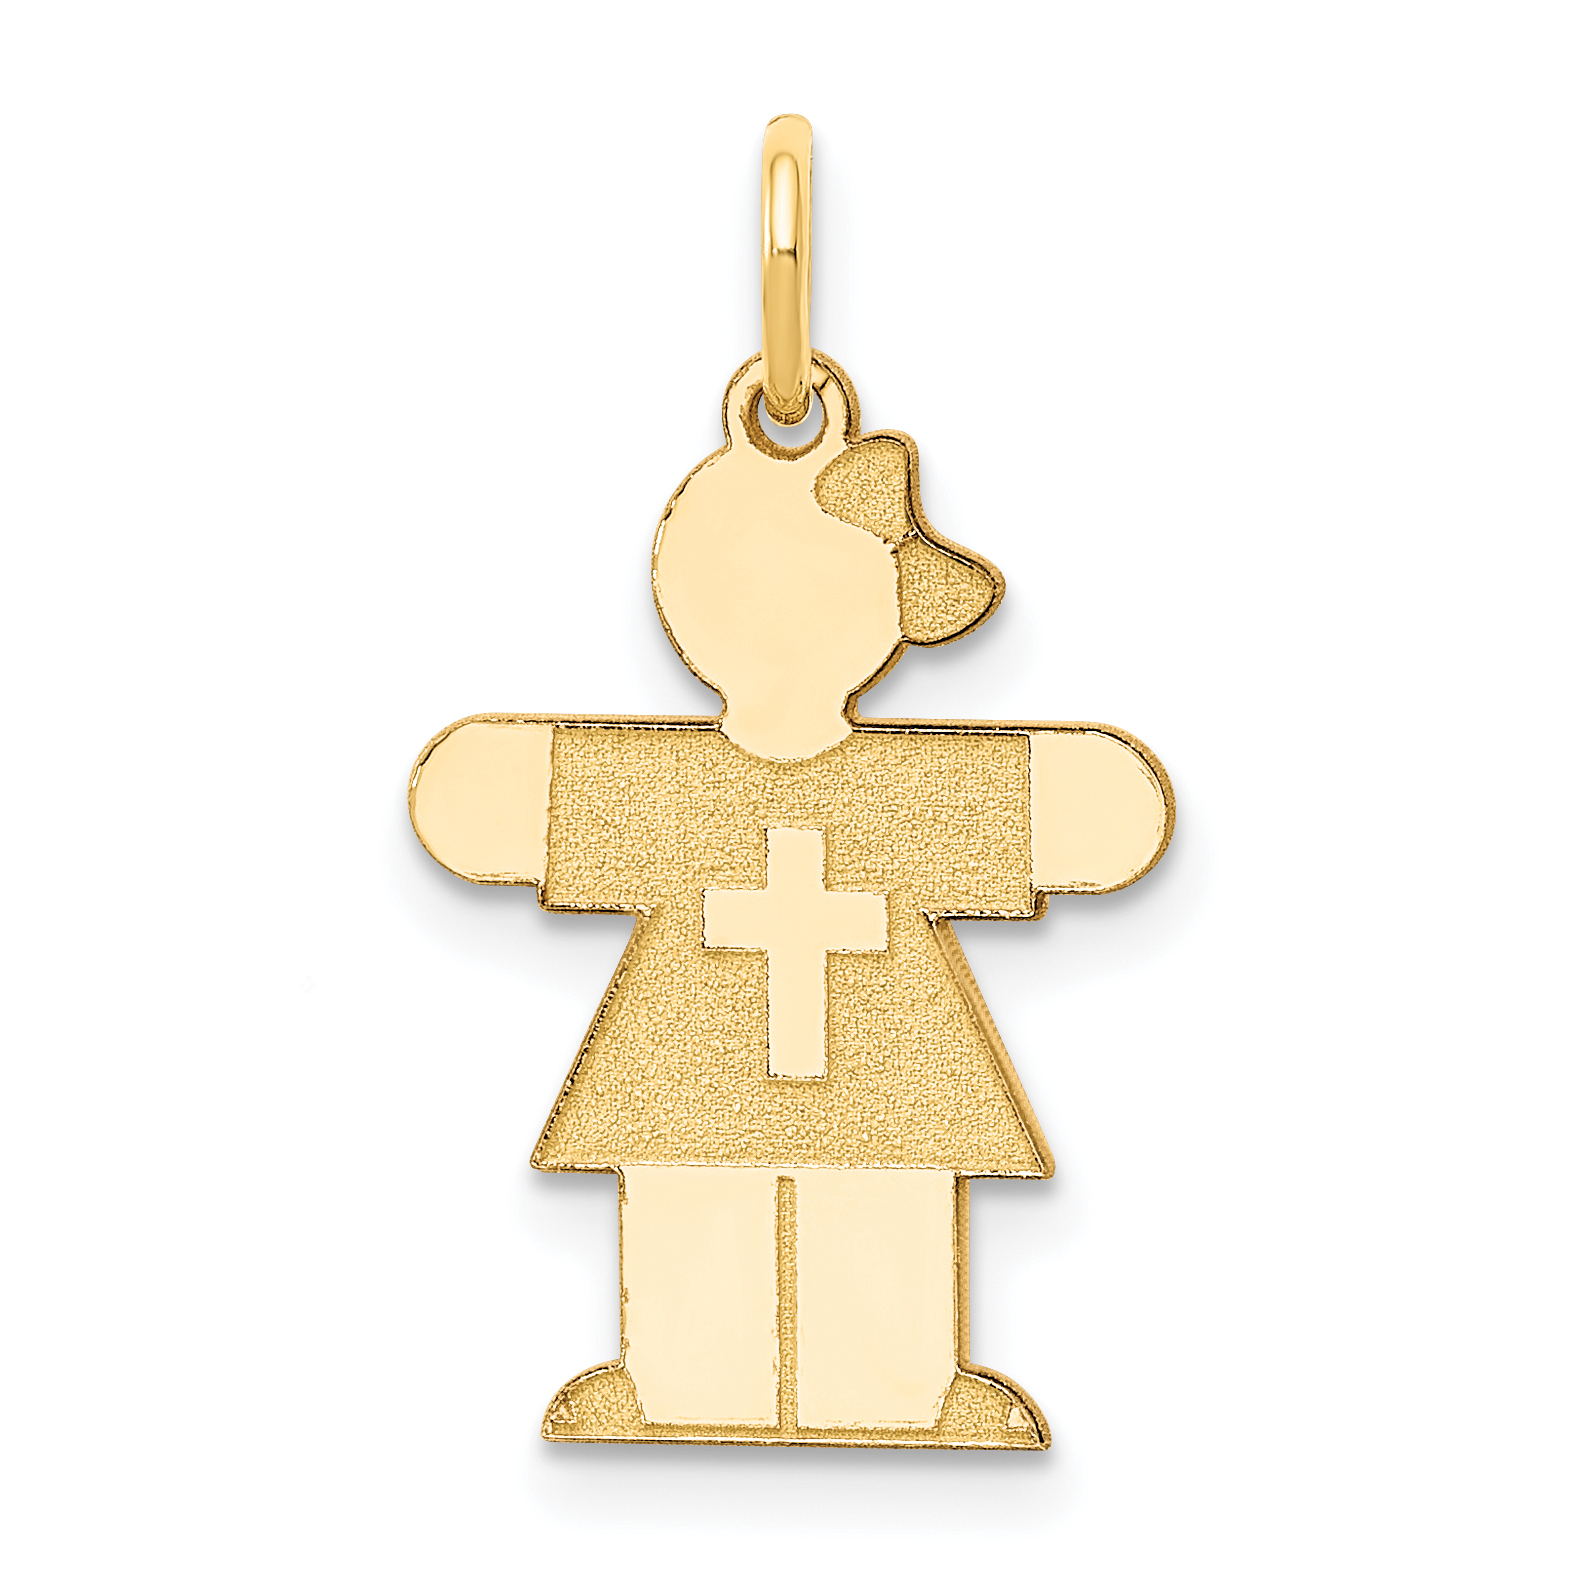 14k Yellow Gold Kid Pendant Charm Necklace Fine Jewelry Gifts For Women For Her - image 2 of 2